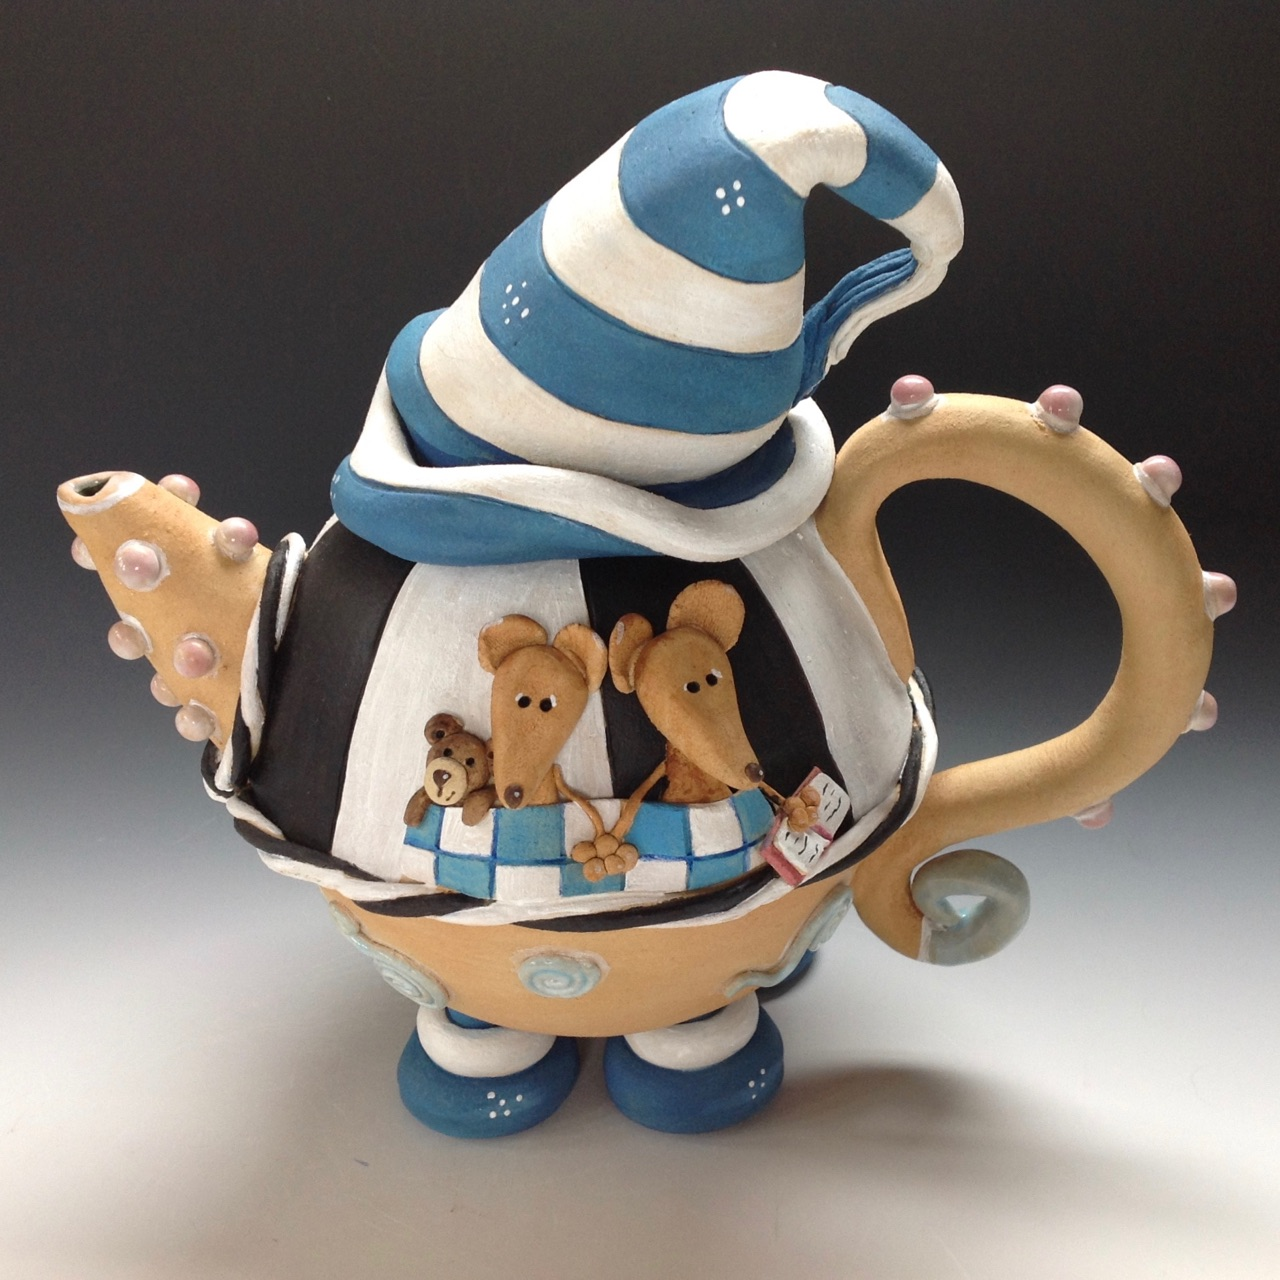 whimsical tea pot